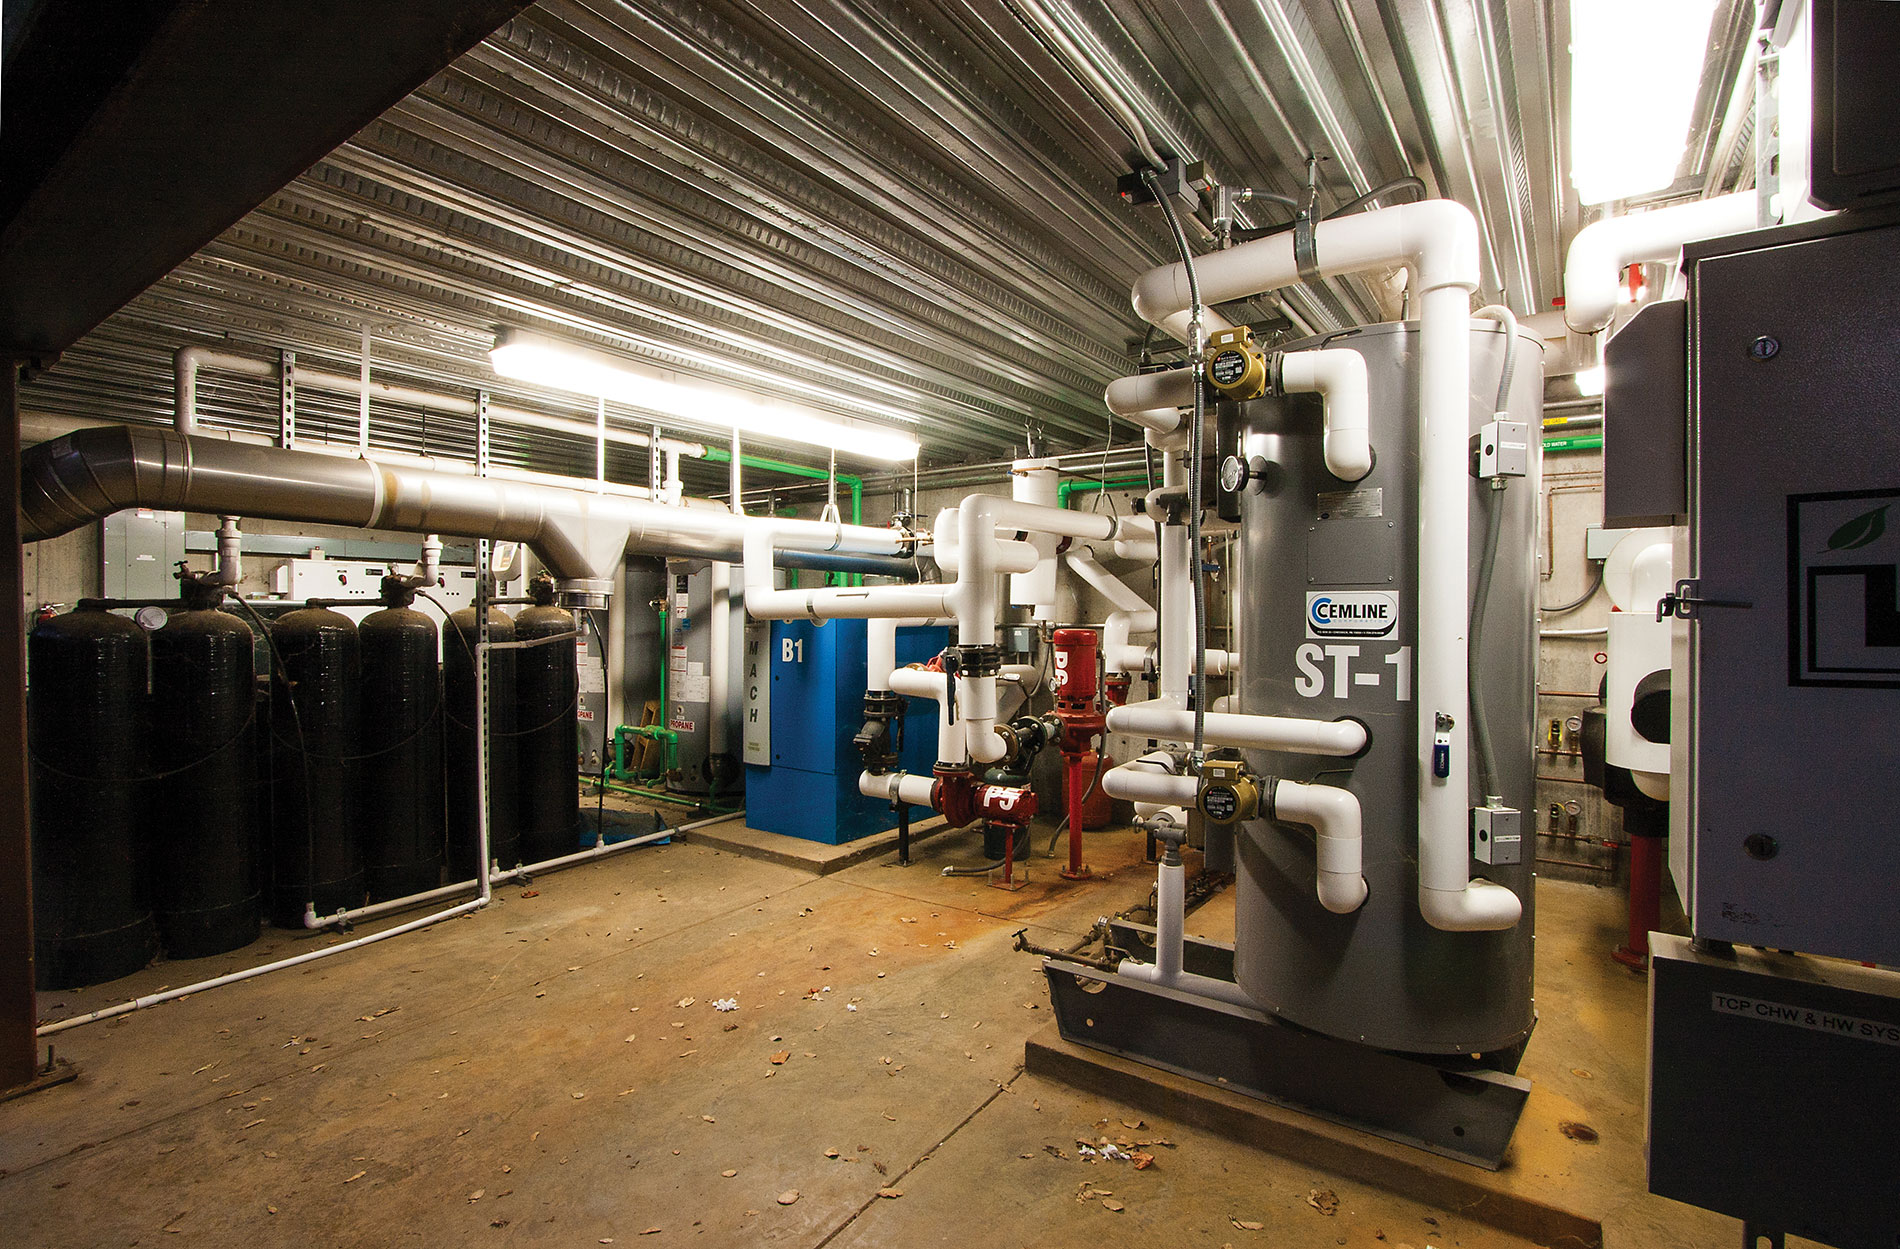 The equipment vault includes air compression, hot and chilled water, pumps and drives for fermentation room operation. Photo Credit: Grafton Electric